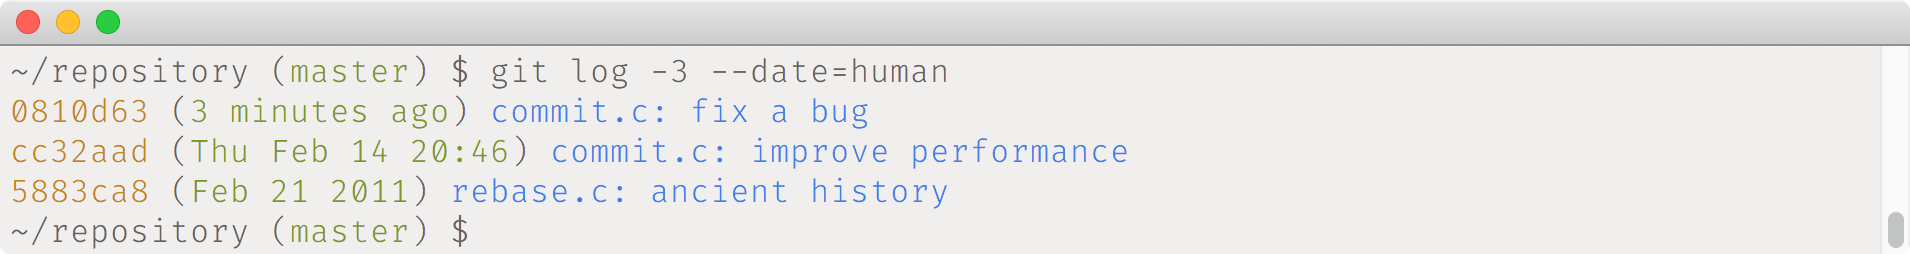 git log --date=human example